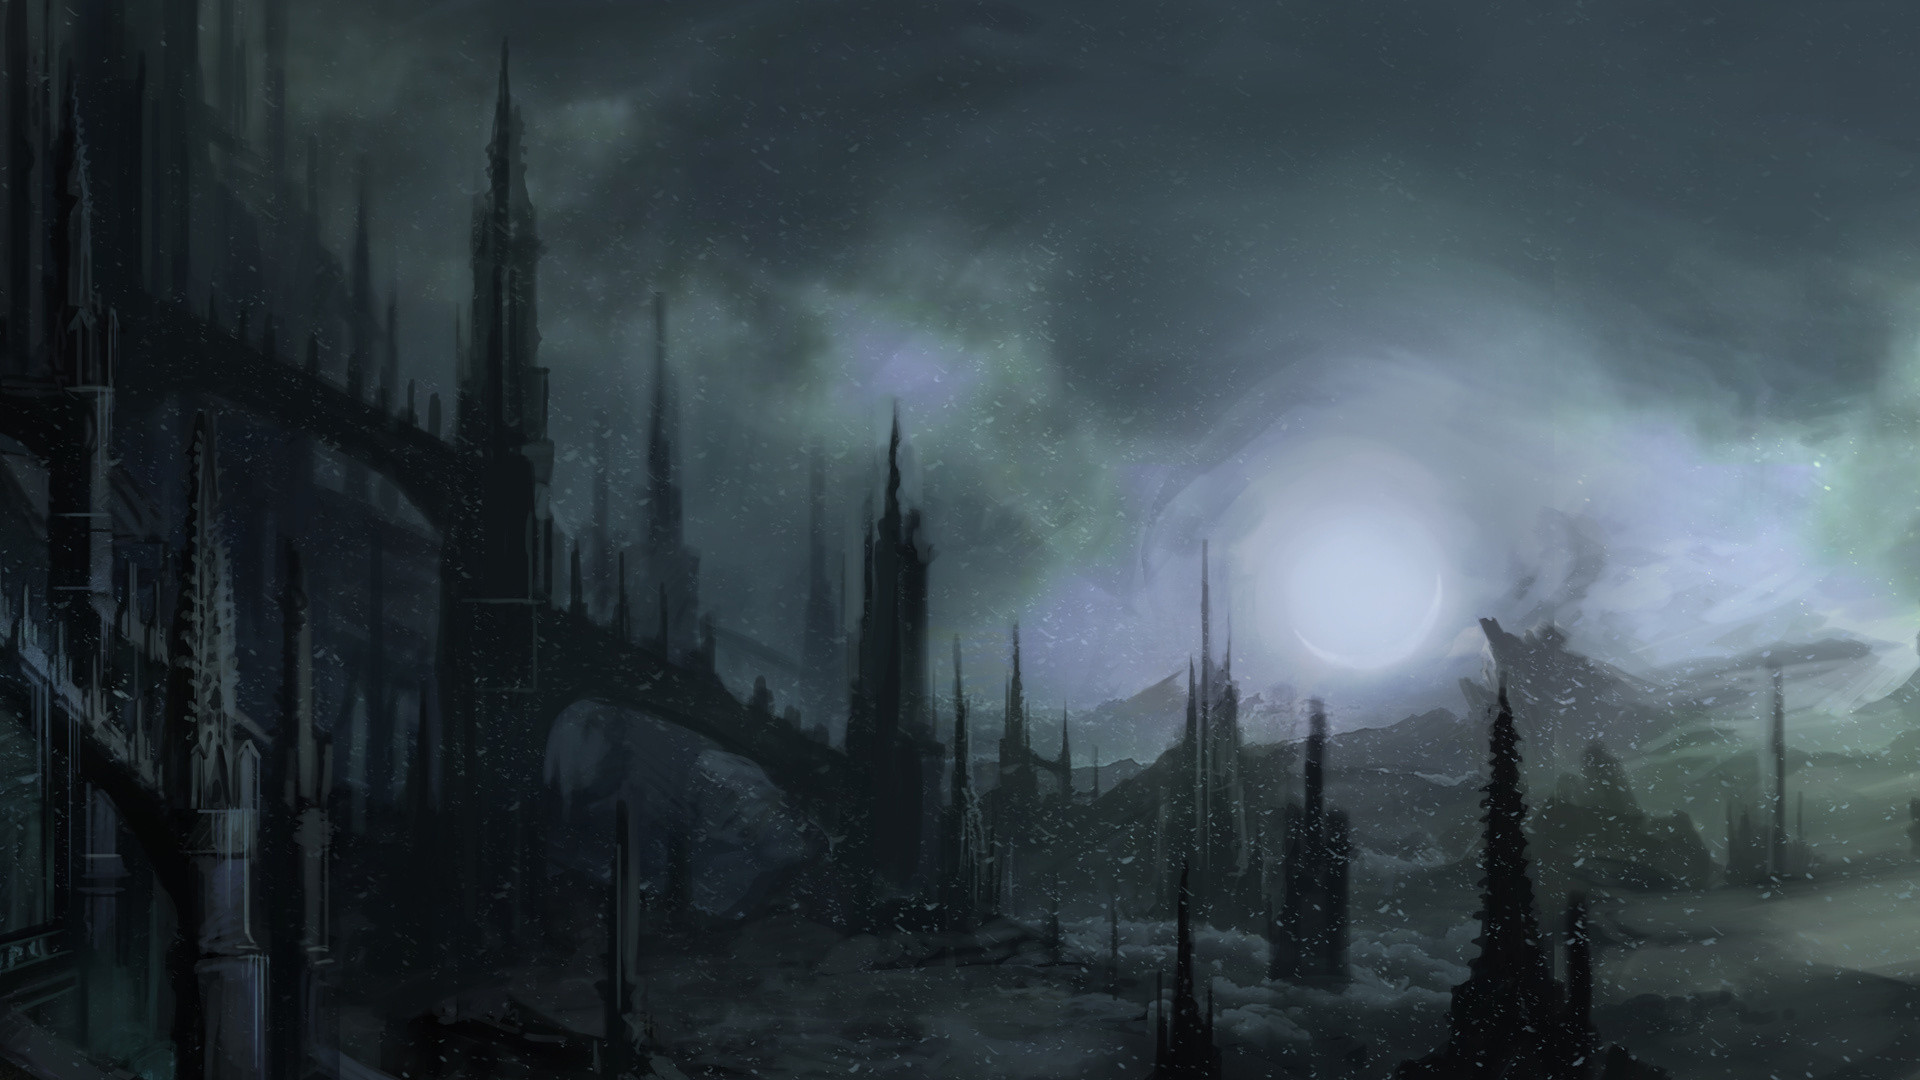 1920x1080 Cool Gothic Backgrounds - Wallpaper Cave Gothic Wallpapers For Desktop | Gothic  Backgrounds and Images (31 .